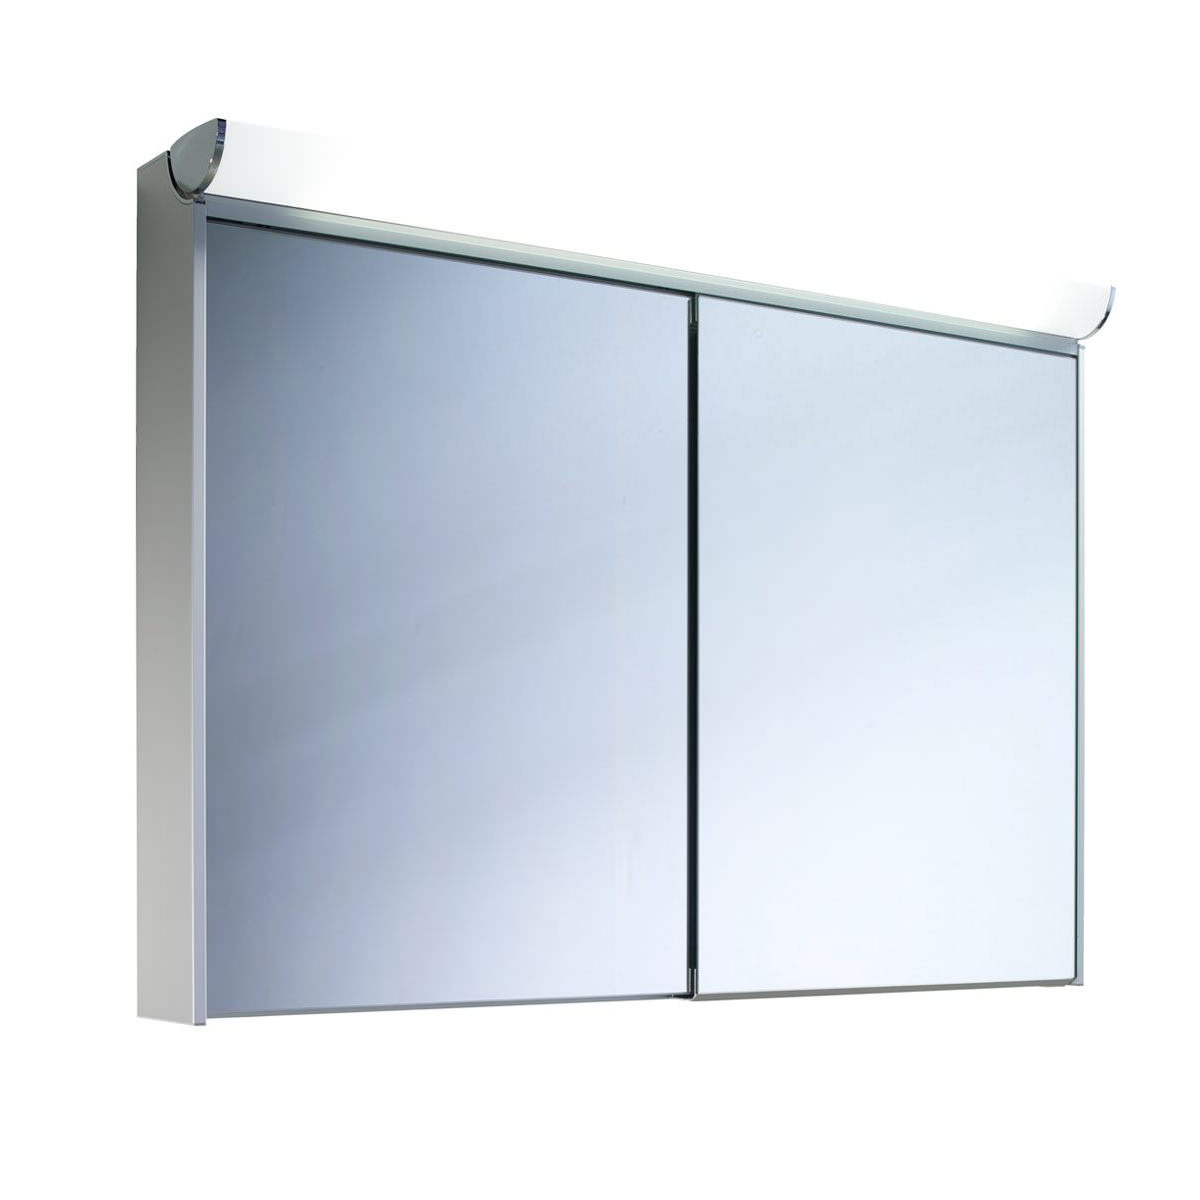 Schneider slideline 1300mm cabinet with 2 sliding mirror doors for Sliding mirror doors